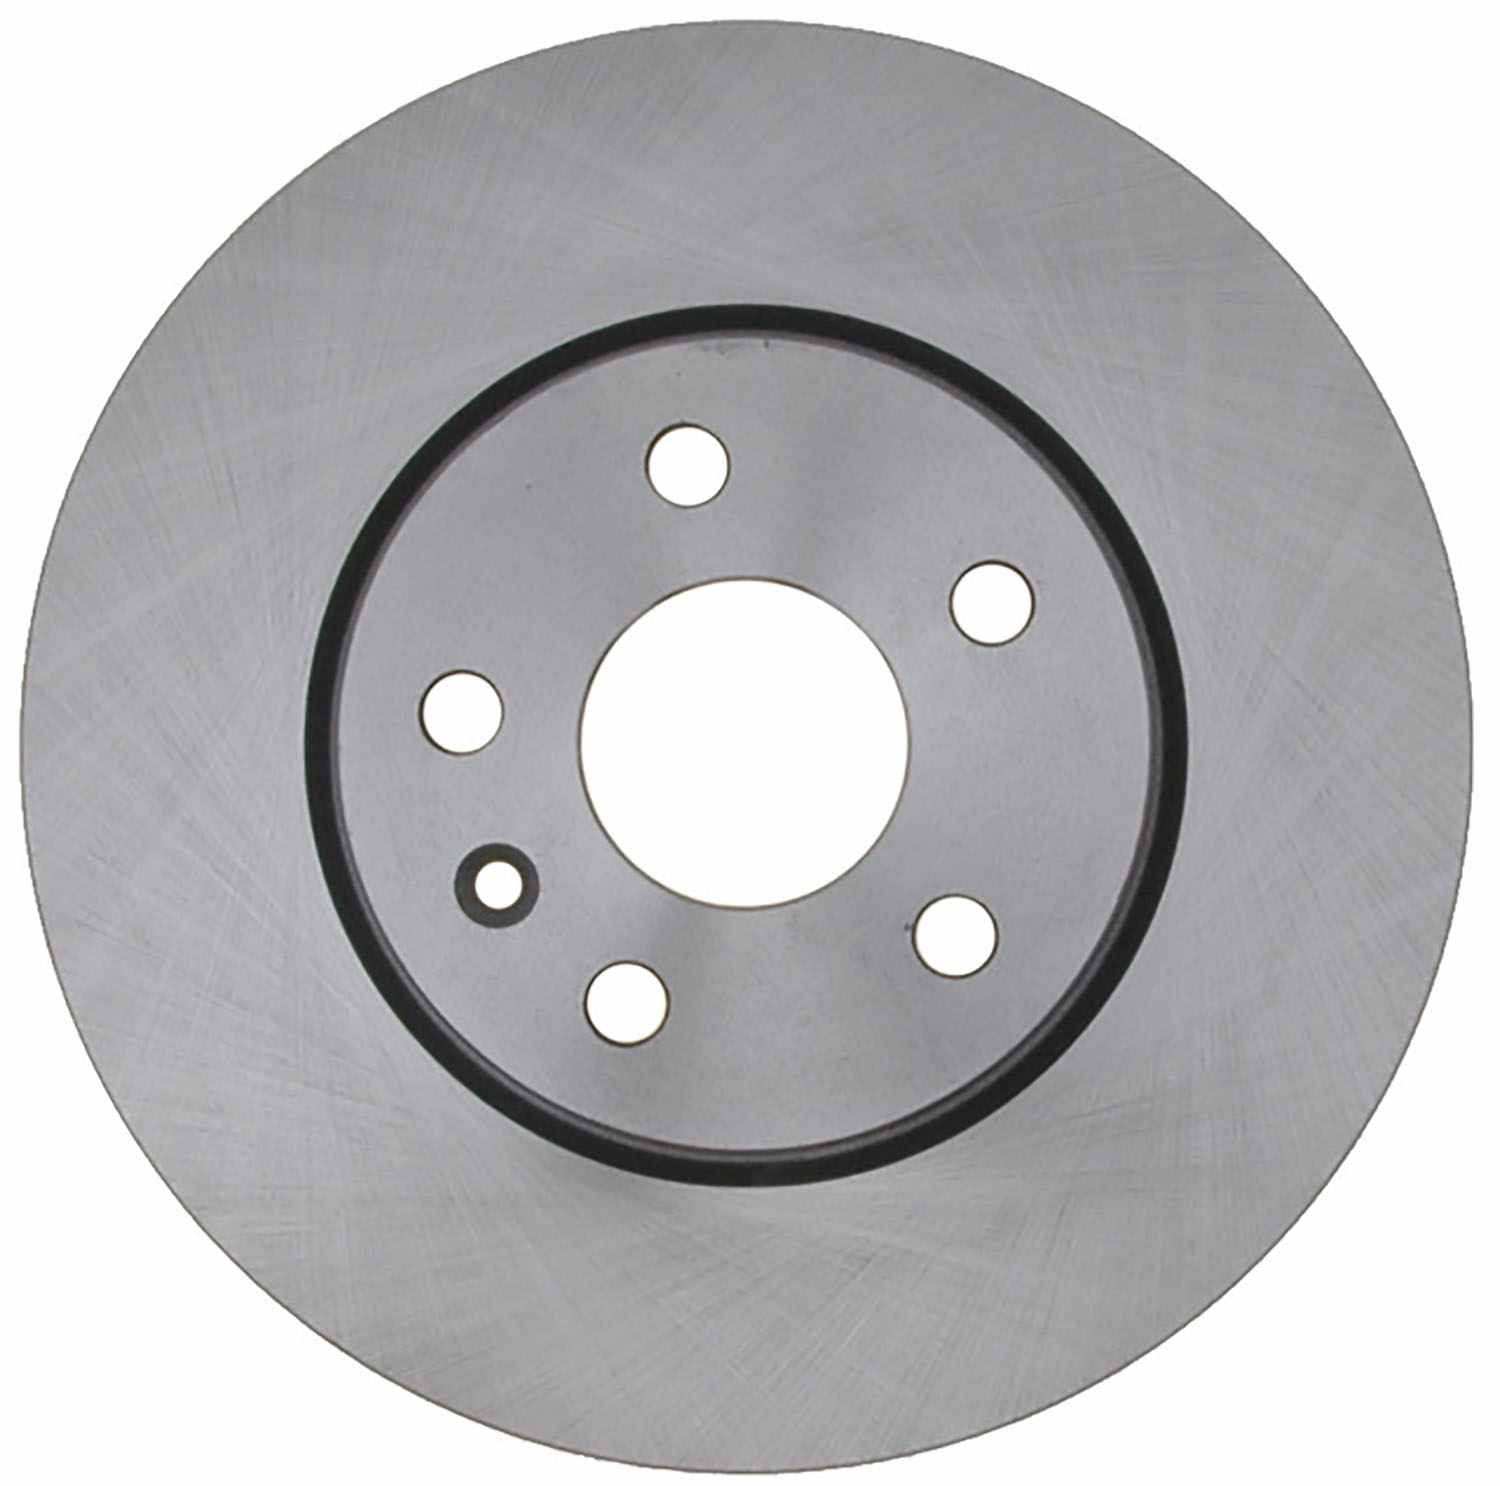 ACDELCO SILVER/ADVANTAGE - Coated Disc Brake Rotor (Front) - DCD 18A2822AC